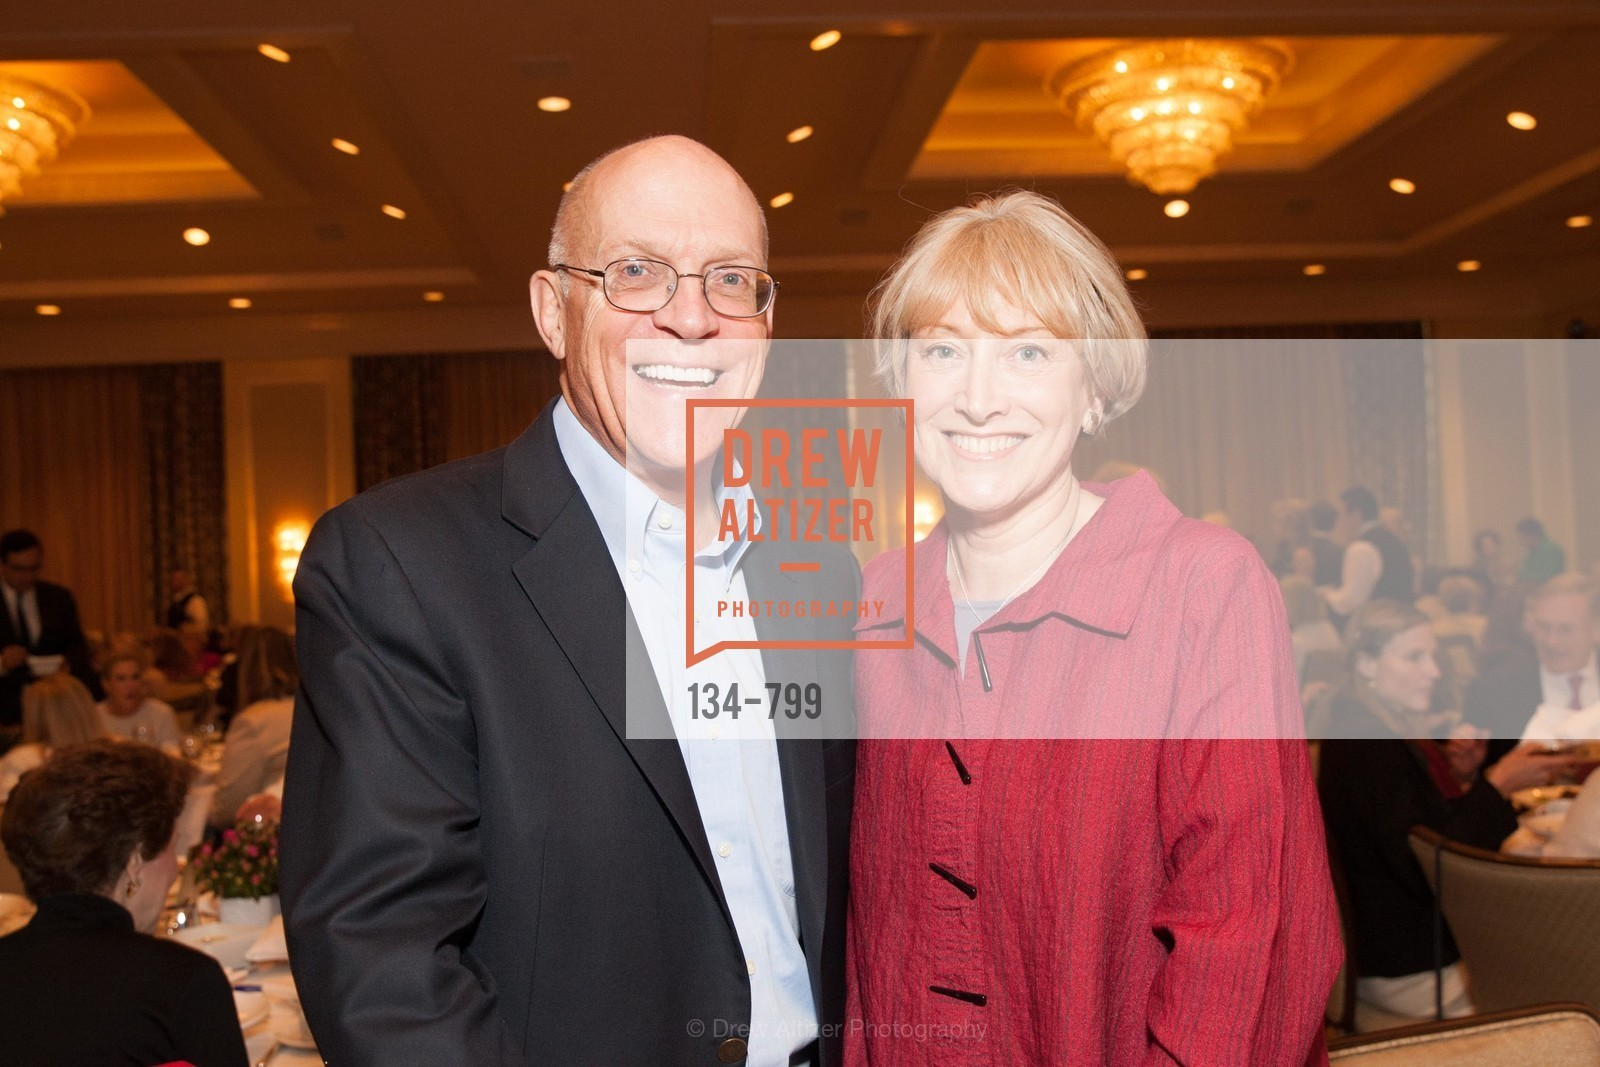 Sterling Spearing, Barbara Coombs Lee, COMPASSION & CHOICES - Empowerment Luncheon, US, April 24th, 2015,Drew Altizer, Drew Altizer Photography, full-service agency, private events, San Francisco photographer, photographer california